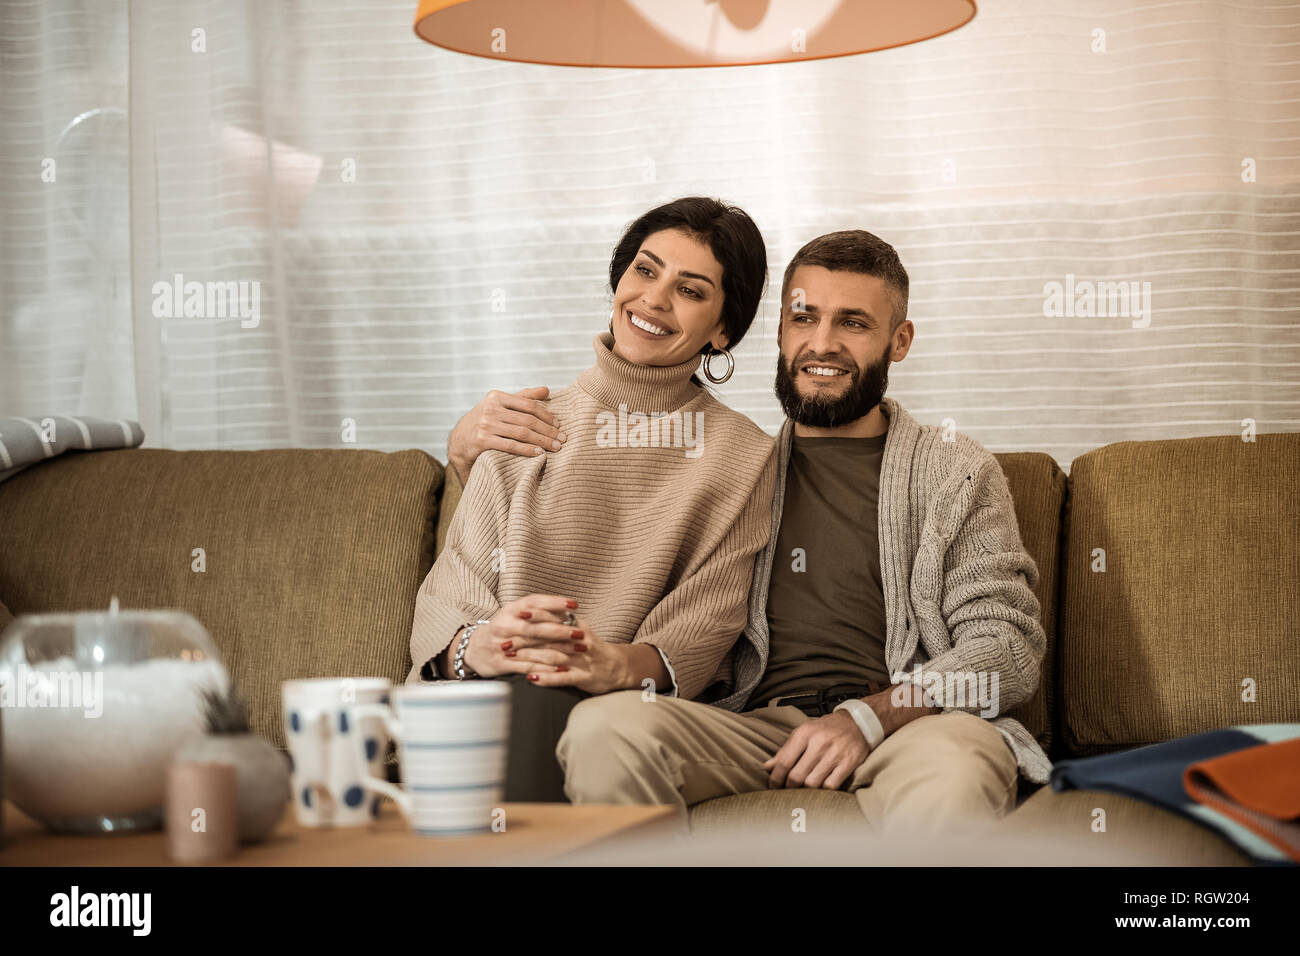 Dark-haired cute couple sitting extremely close to each other while watching TV - Stock Image